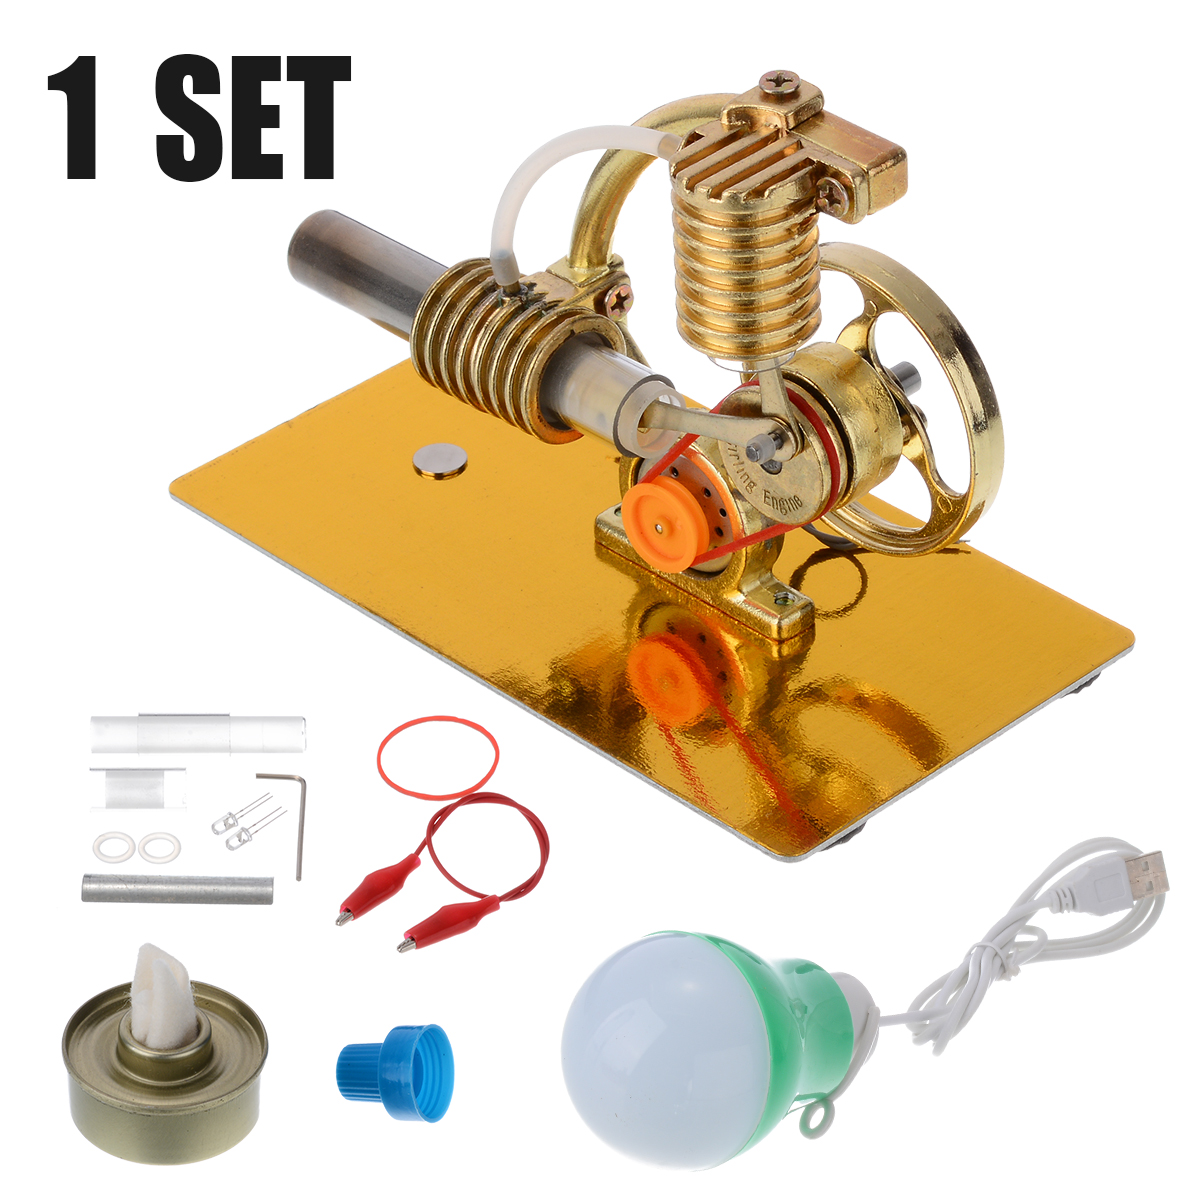 Hot Air Stirling Engine Motor Steam Heat Model Kit DIY Educational Toy Education Kids Toy Science